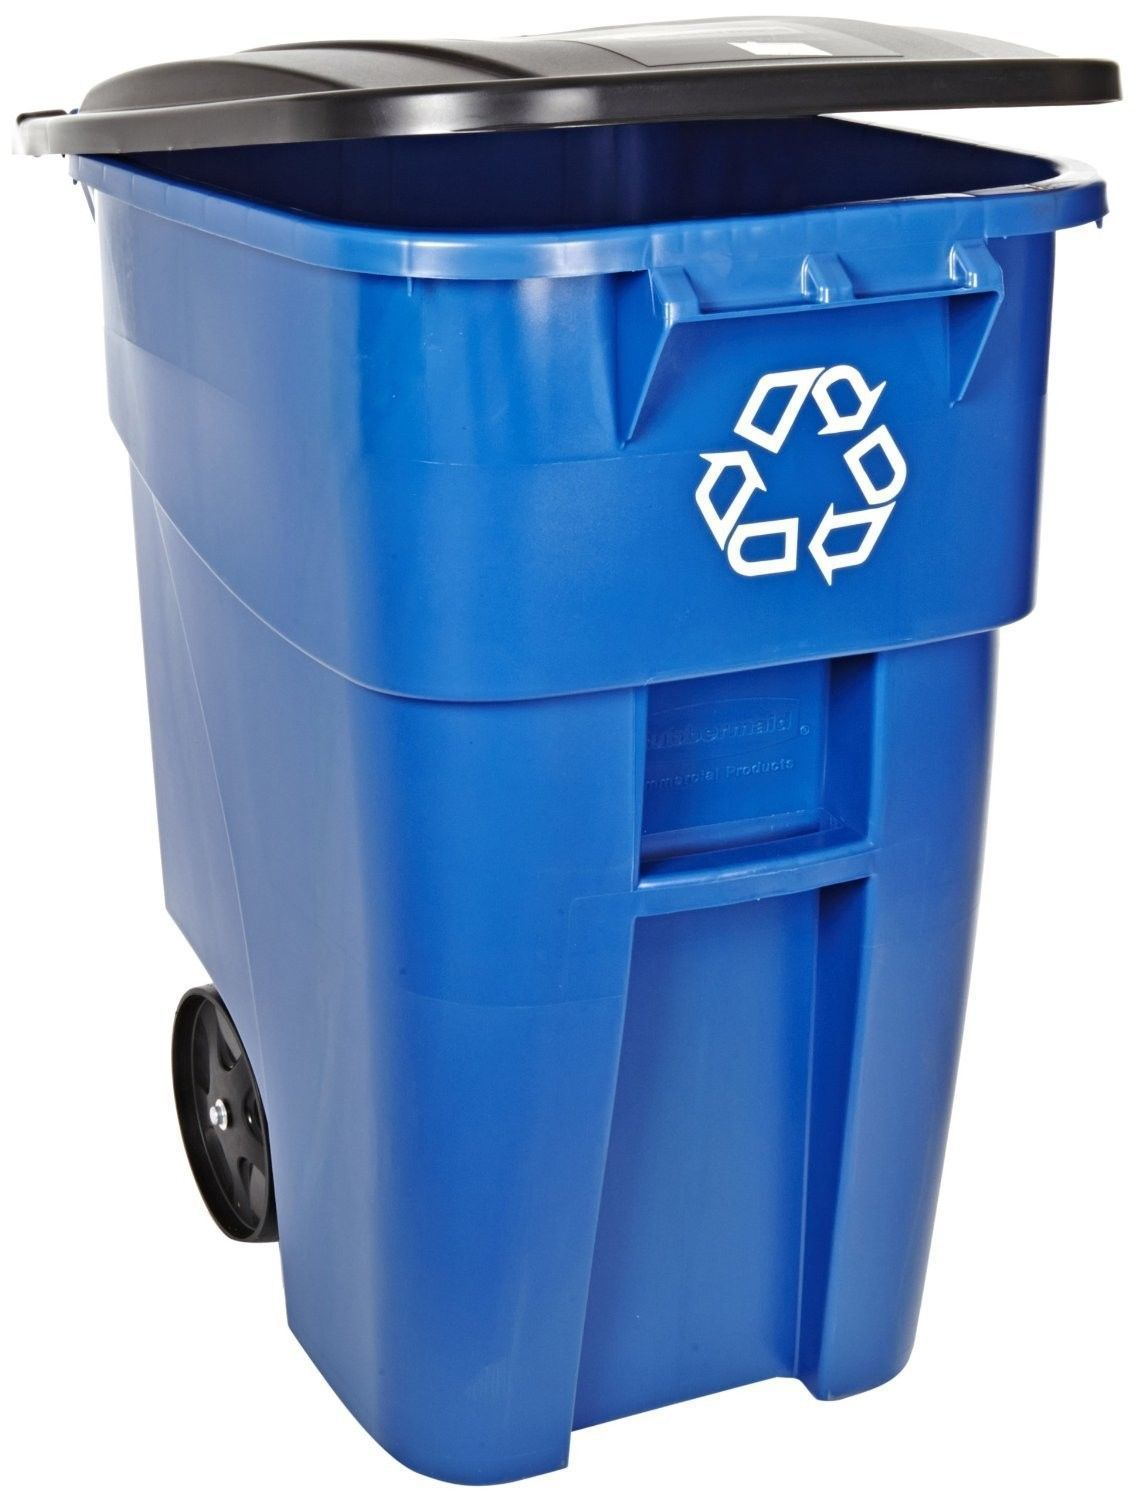 Has A Hinged Lid Integrated Handle Inset Wheels And Is Imprinted With The Recycling Symbol Molded In Rubbermaid Commercial Products Rubbermaid Recycle Trash